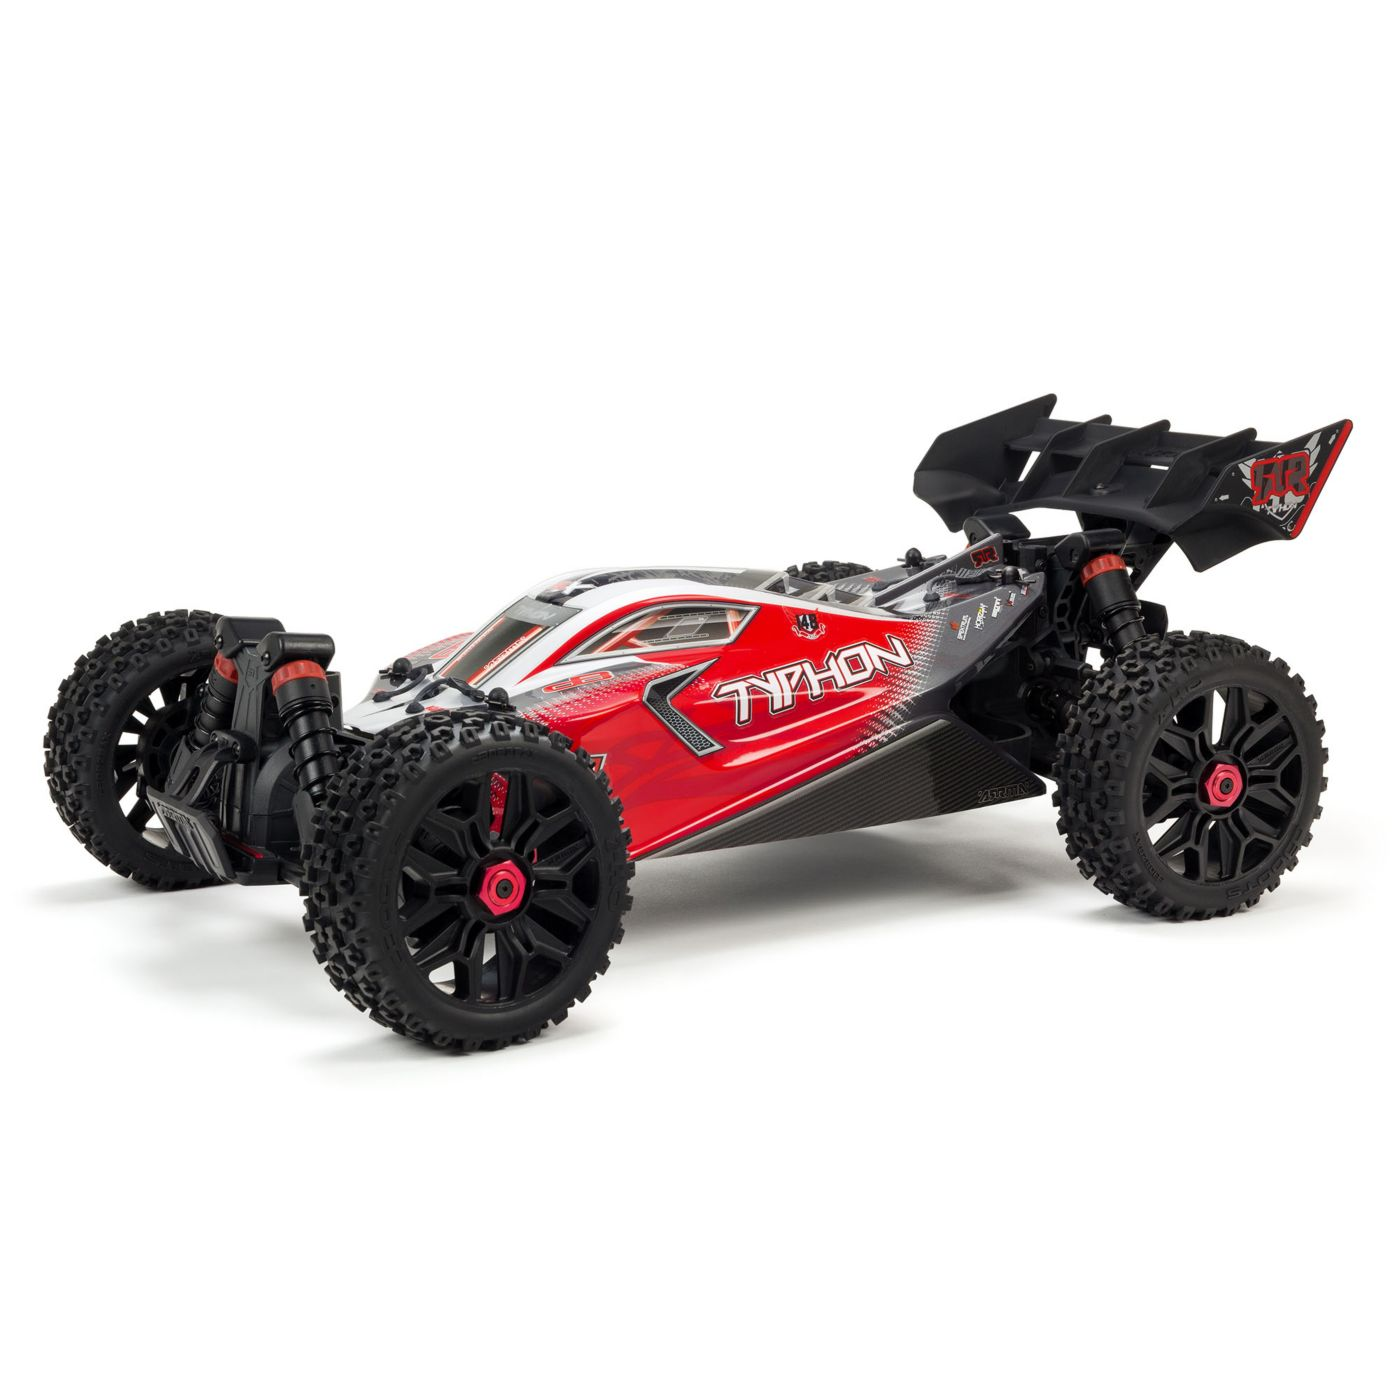 ARRMA 1/8 TYPHON 3S BLX 4WD Brushless Buggy with Spektrum RTR, Red